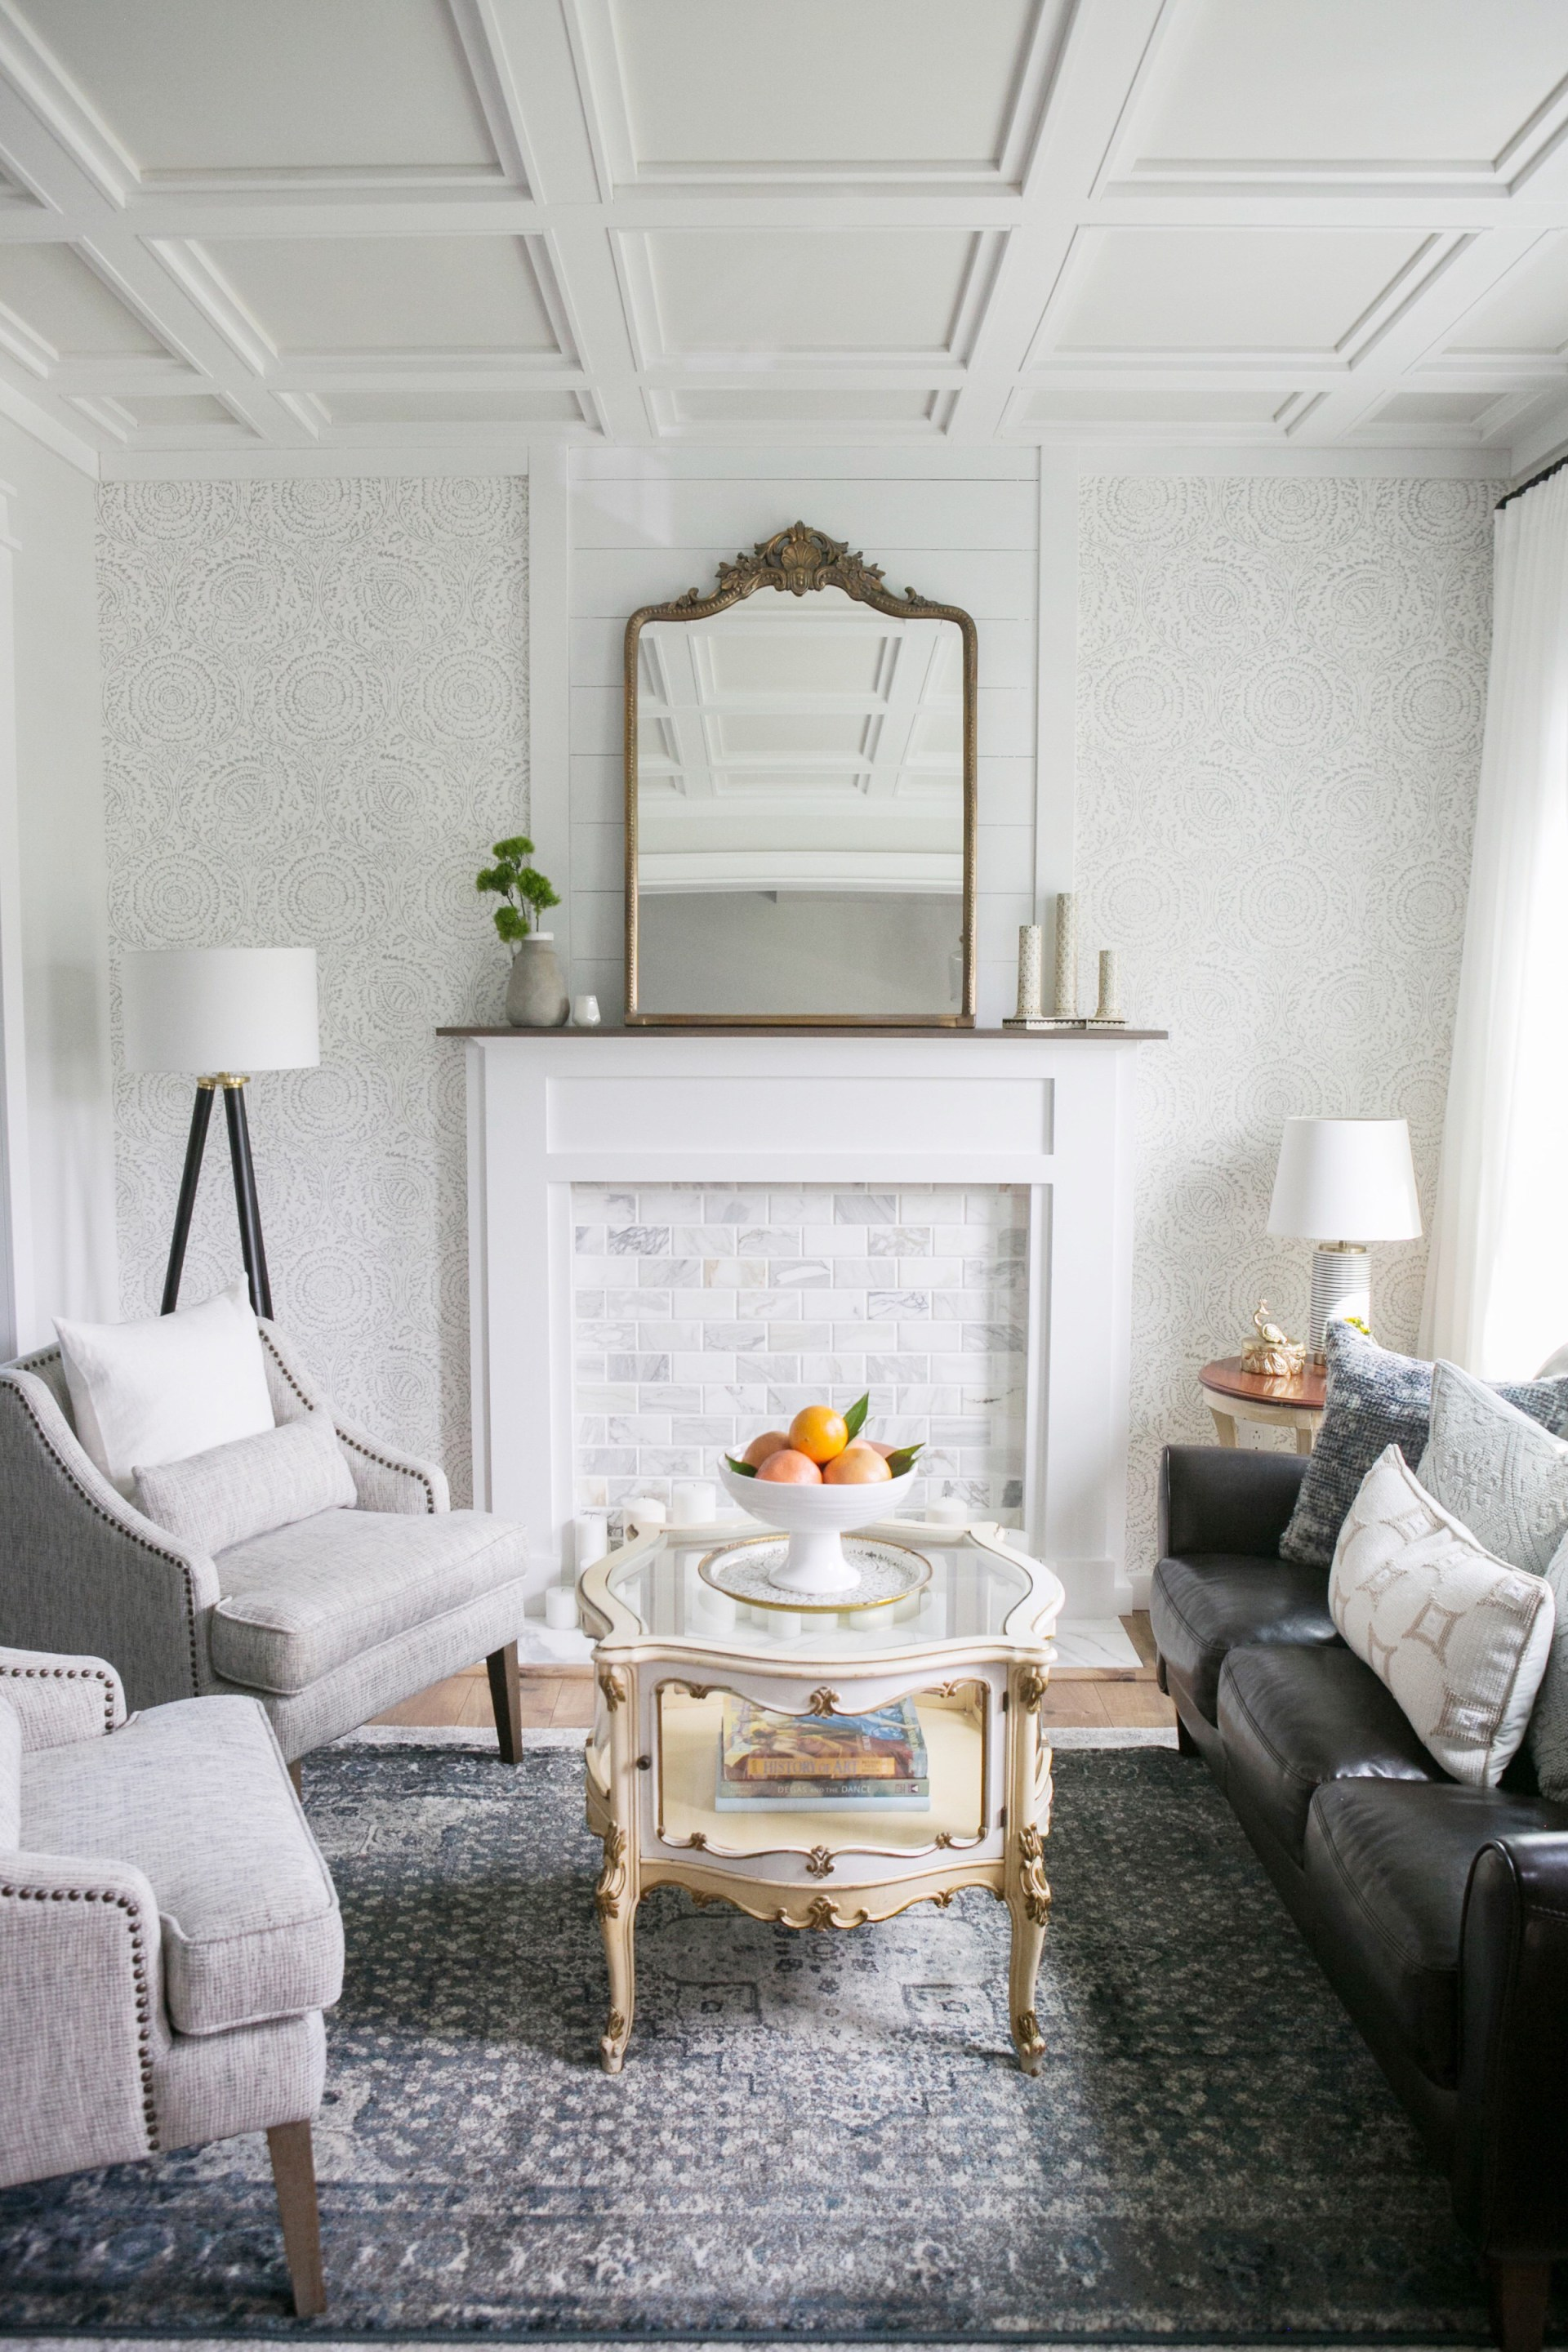 Image via  Hilltown House , Photographed by  Lauri Tripaldi Photography